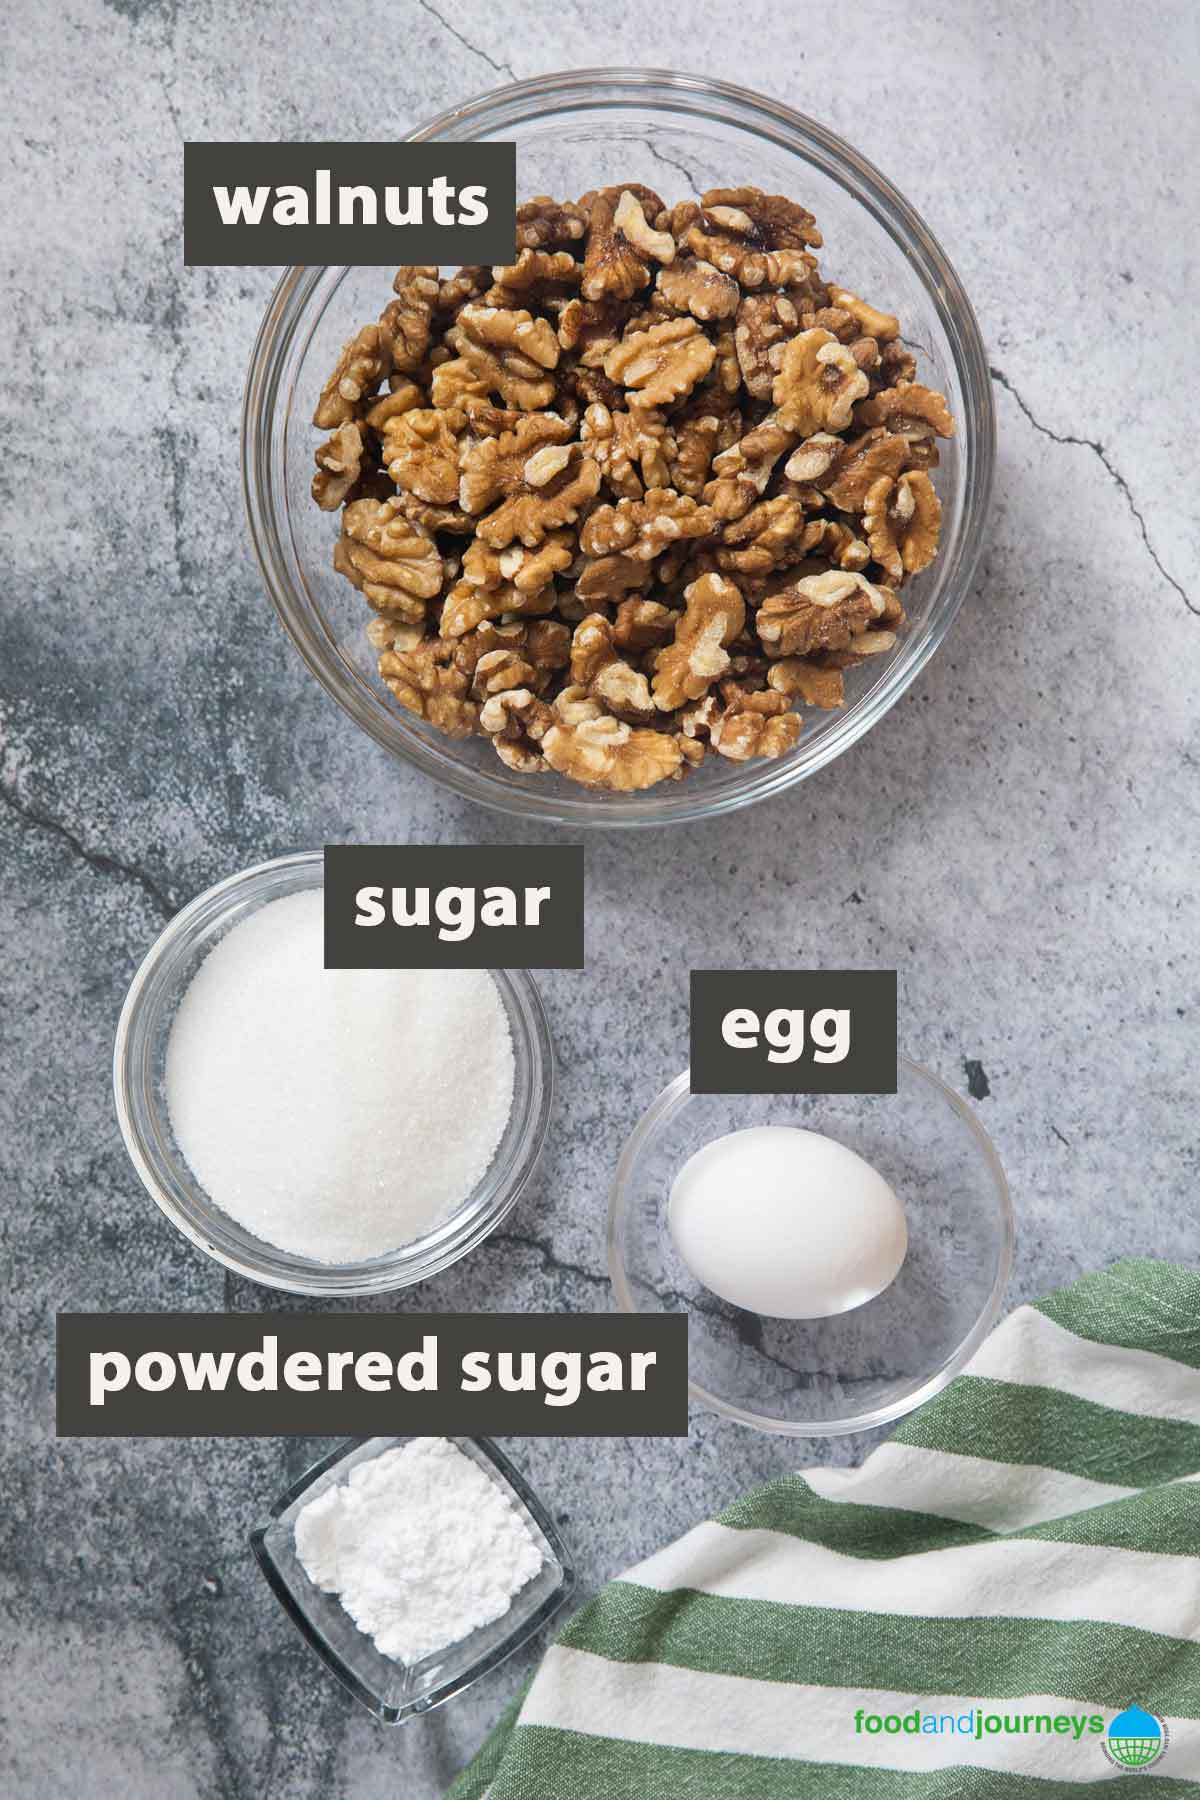 An image showing all the ingredients you need to make dolci di noci at home.